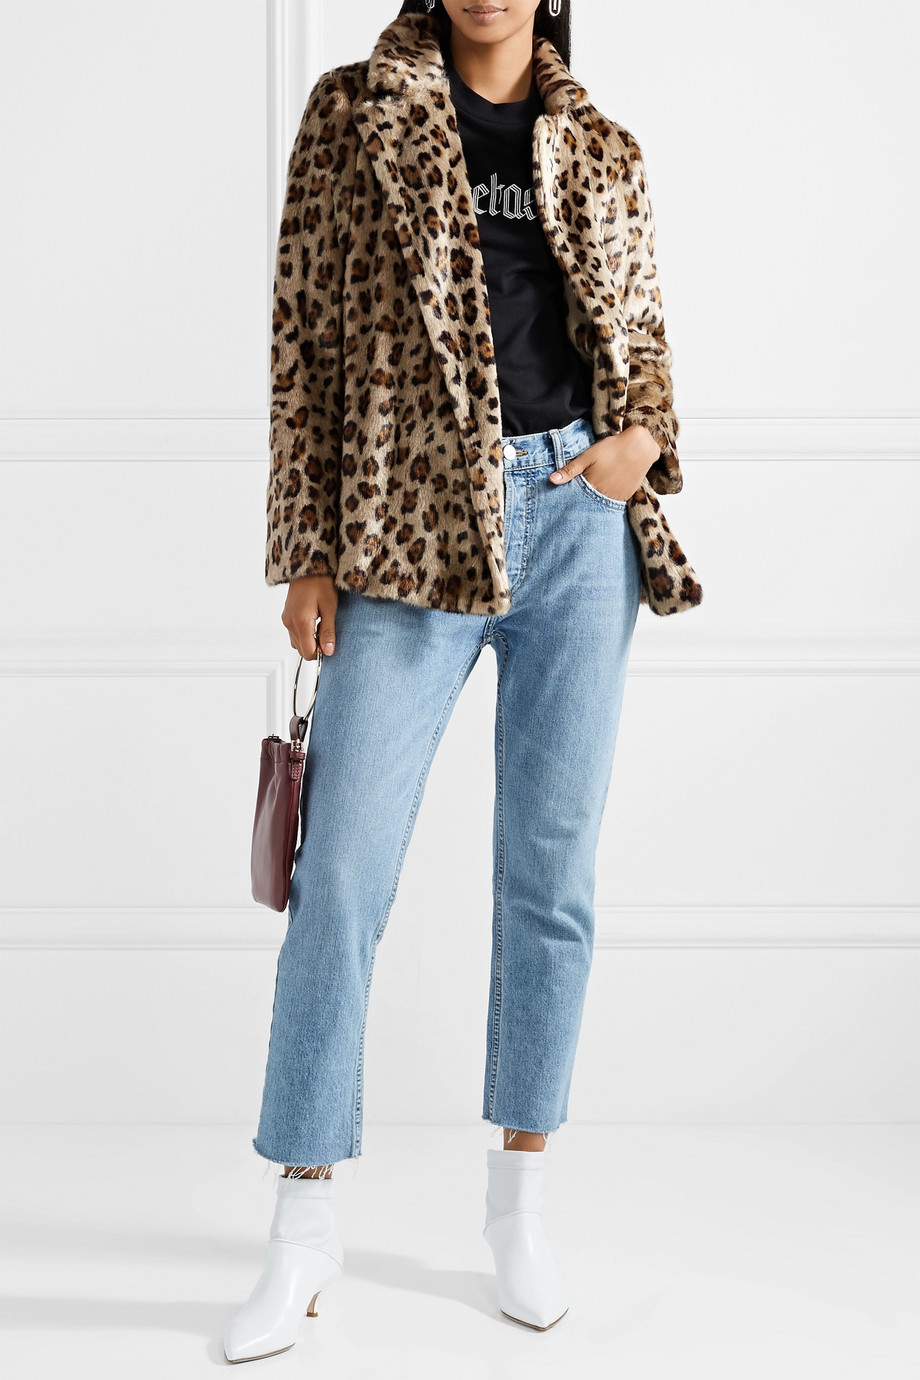 Theory Clairene leopard-print faux fur jacket $417